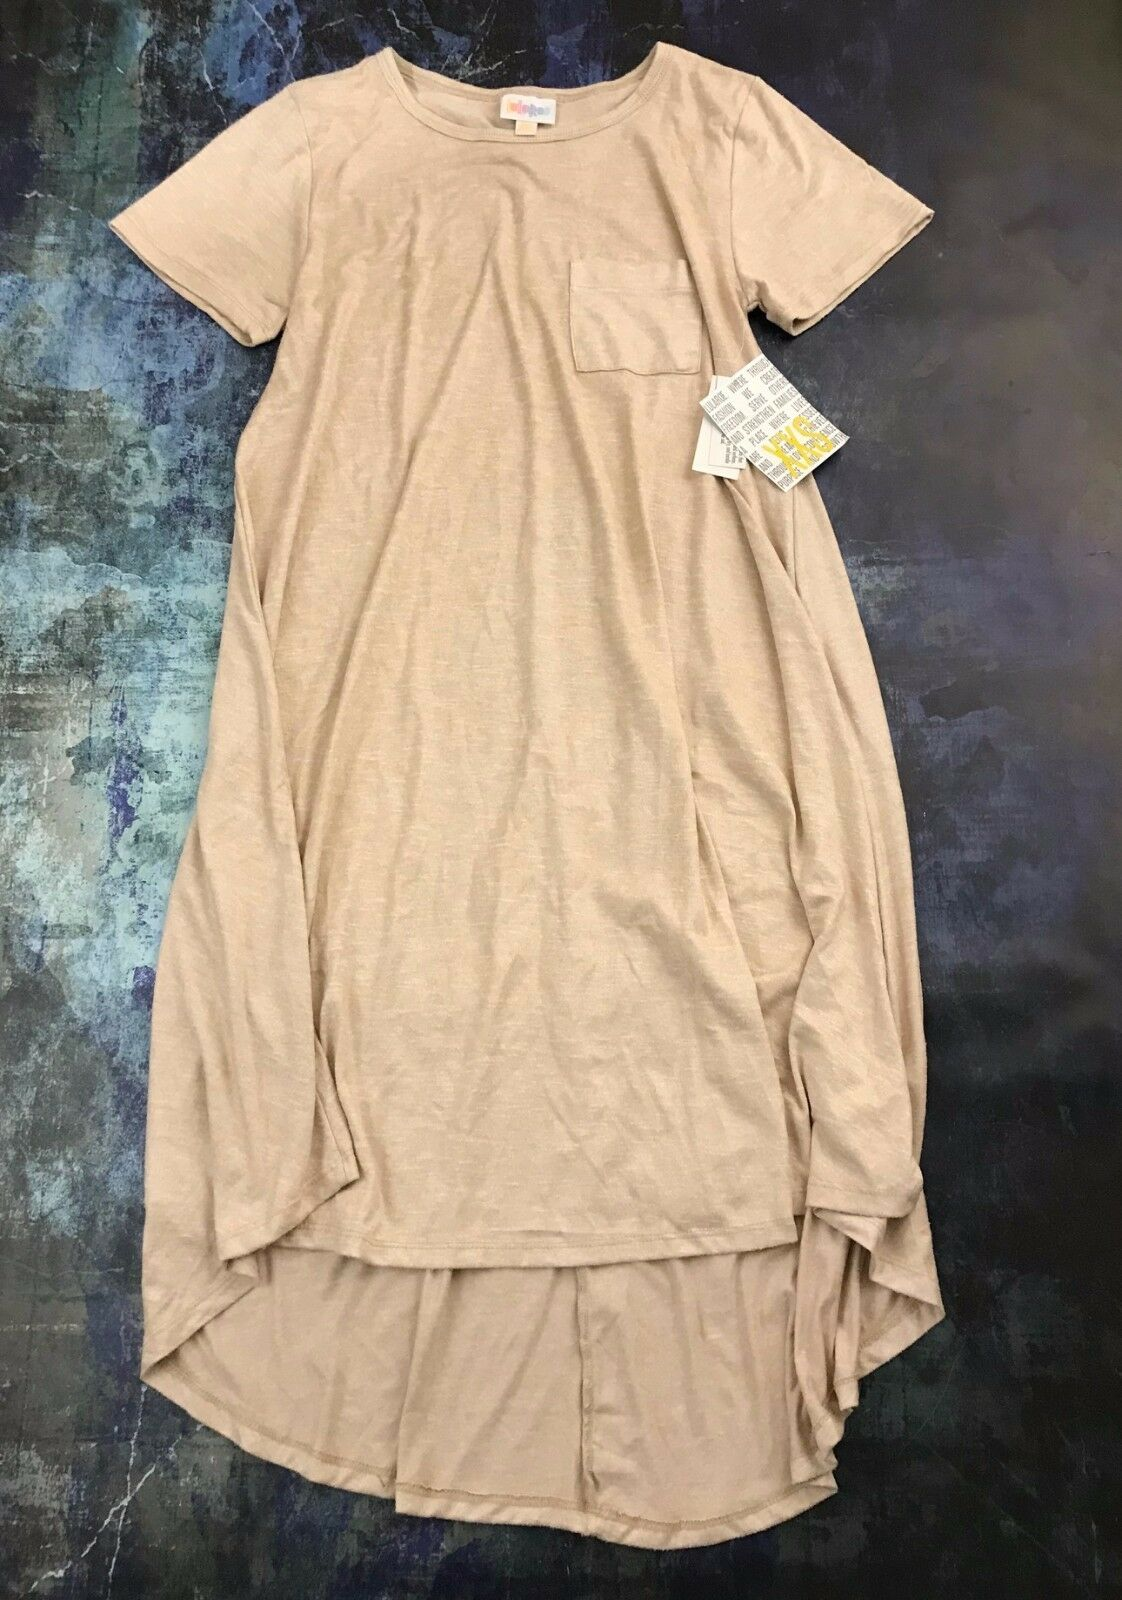 Nouveau Carly  lularoe  Femme Confortable Chemise Robe-XXS Extra Small Tan